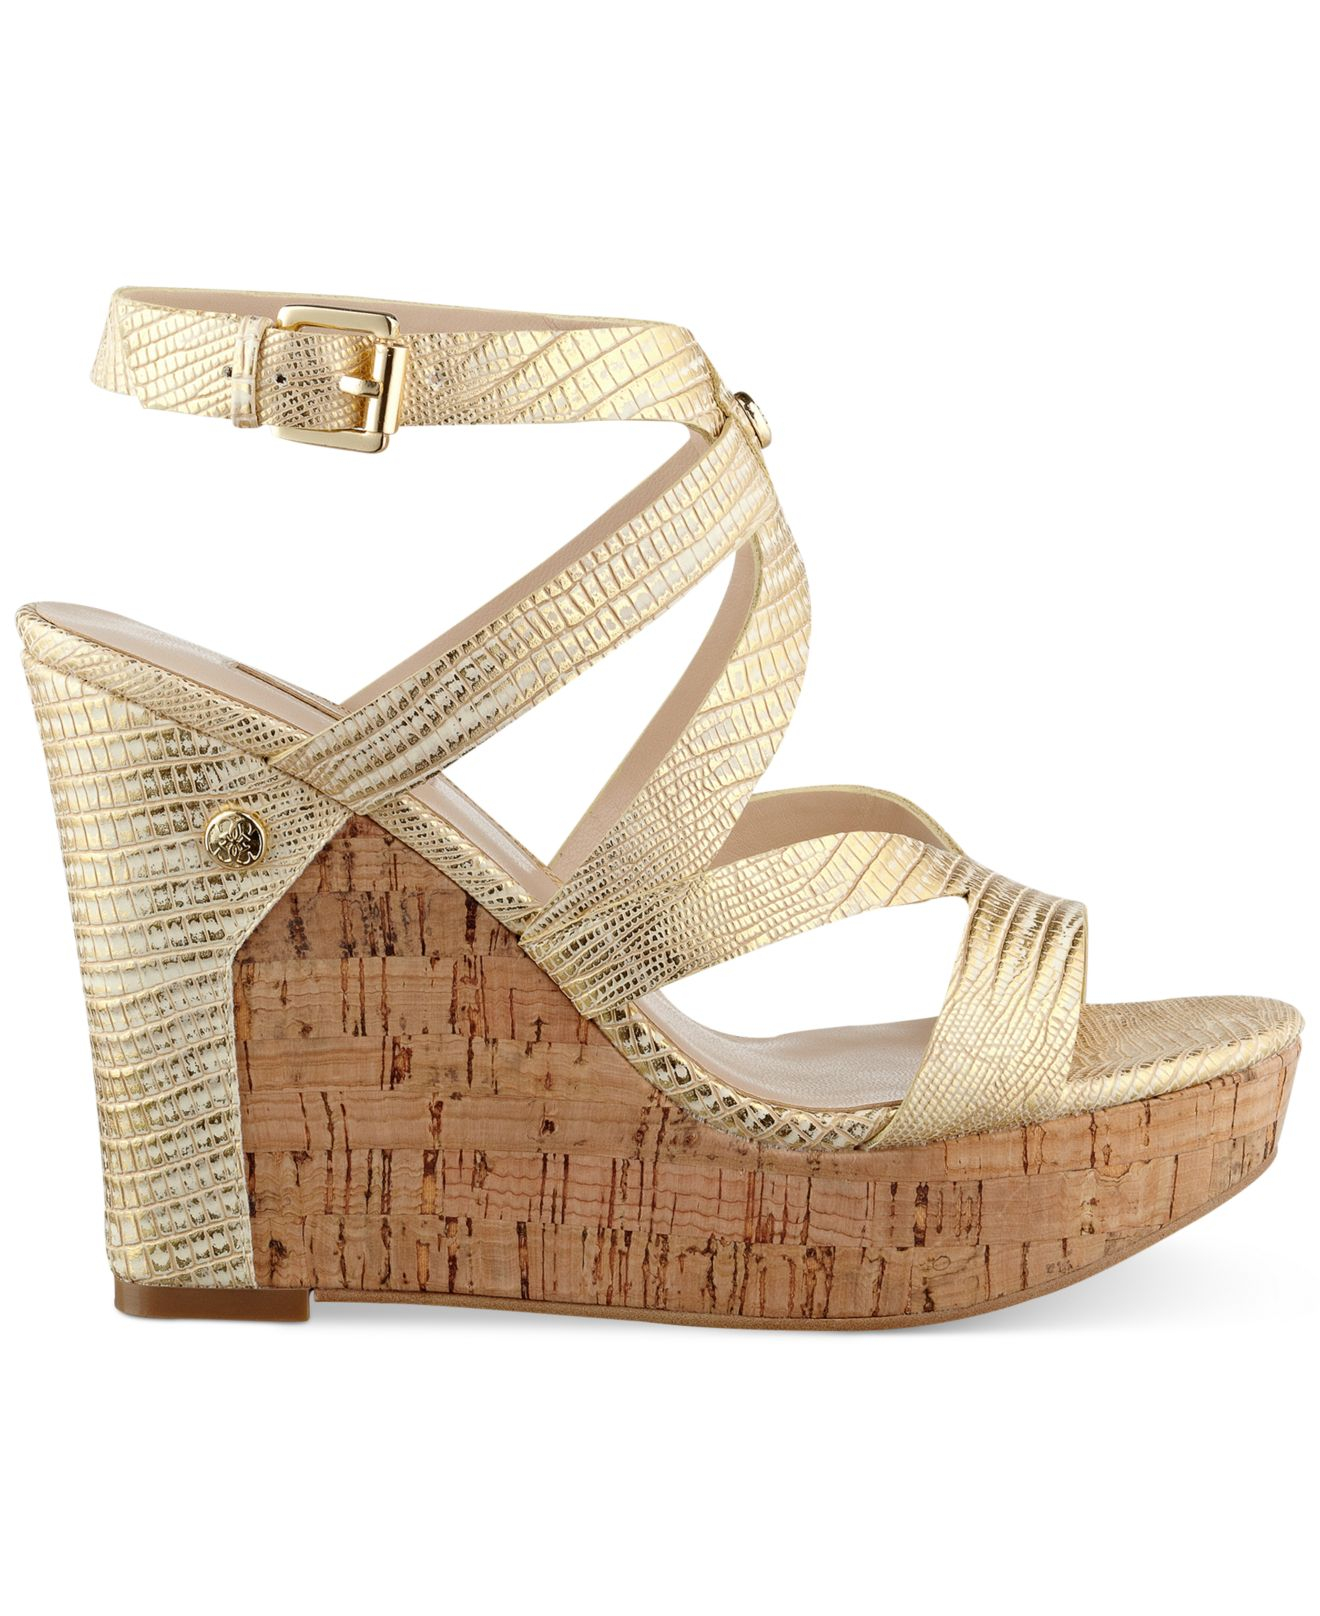 ff50a95306f Lyst - Guess Women S Harlee Cork Platform Wedge Sandals in Metallic